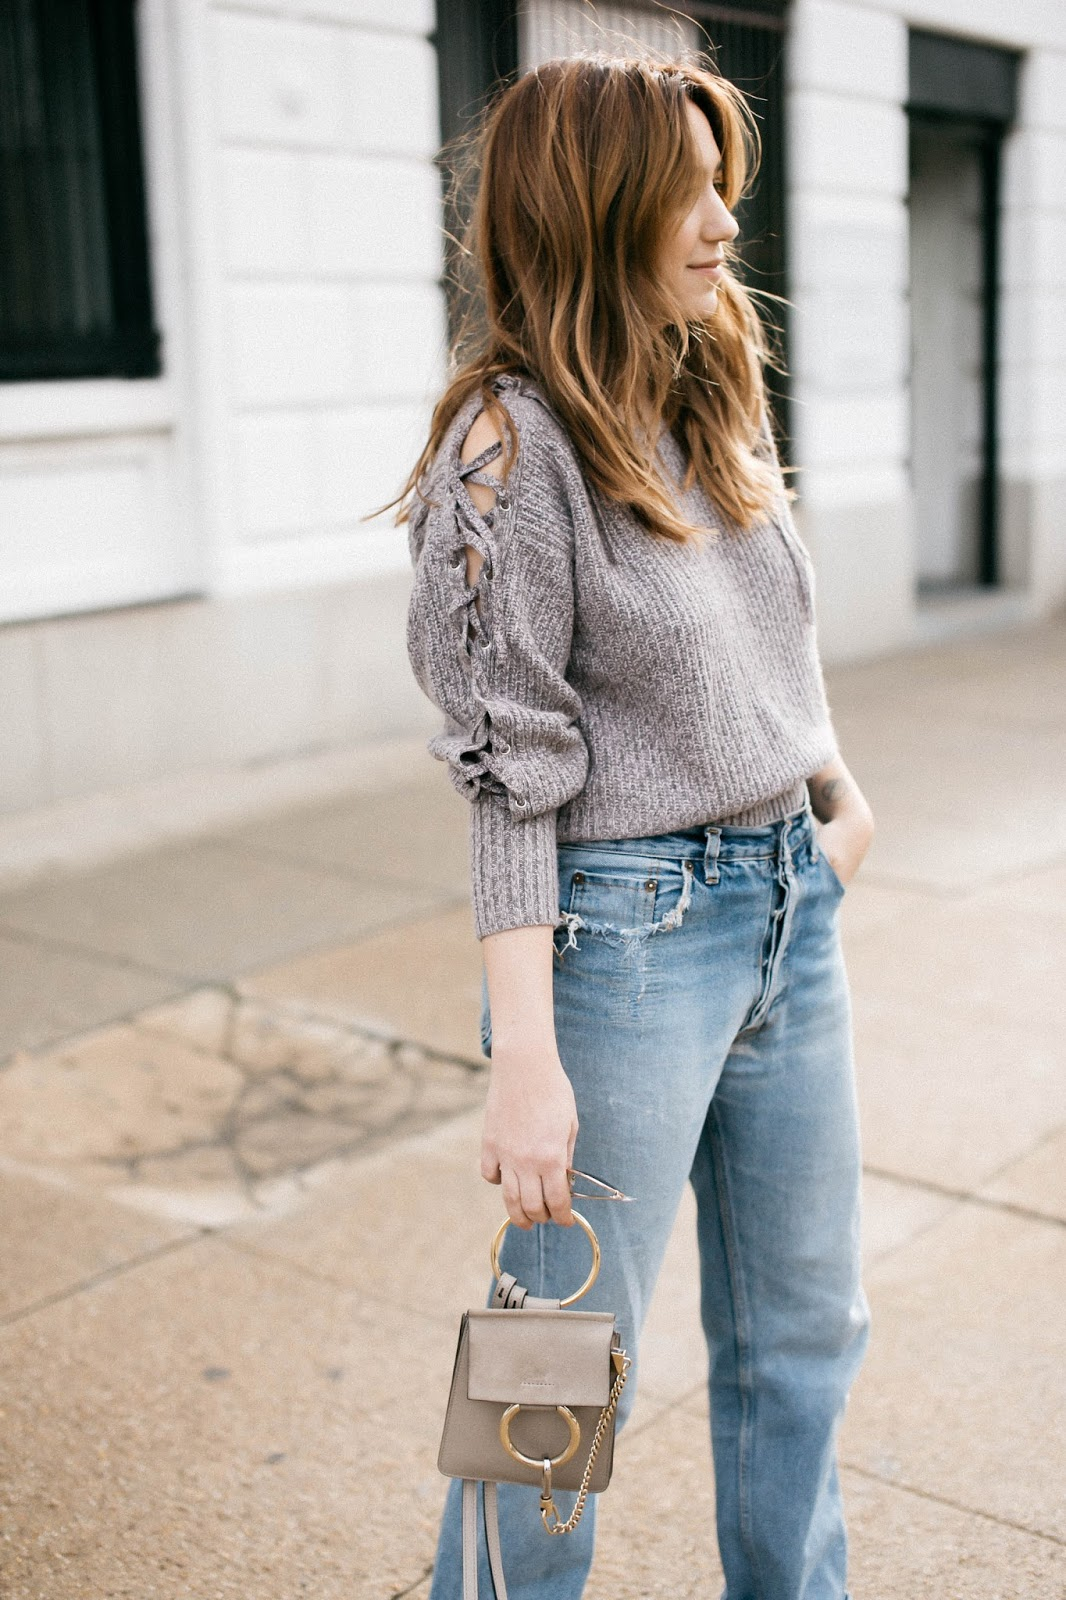 transitional styles, spring sweaters, rebecca minkoff sweater, transitional fashion, spring fashion trends